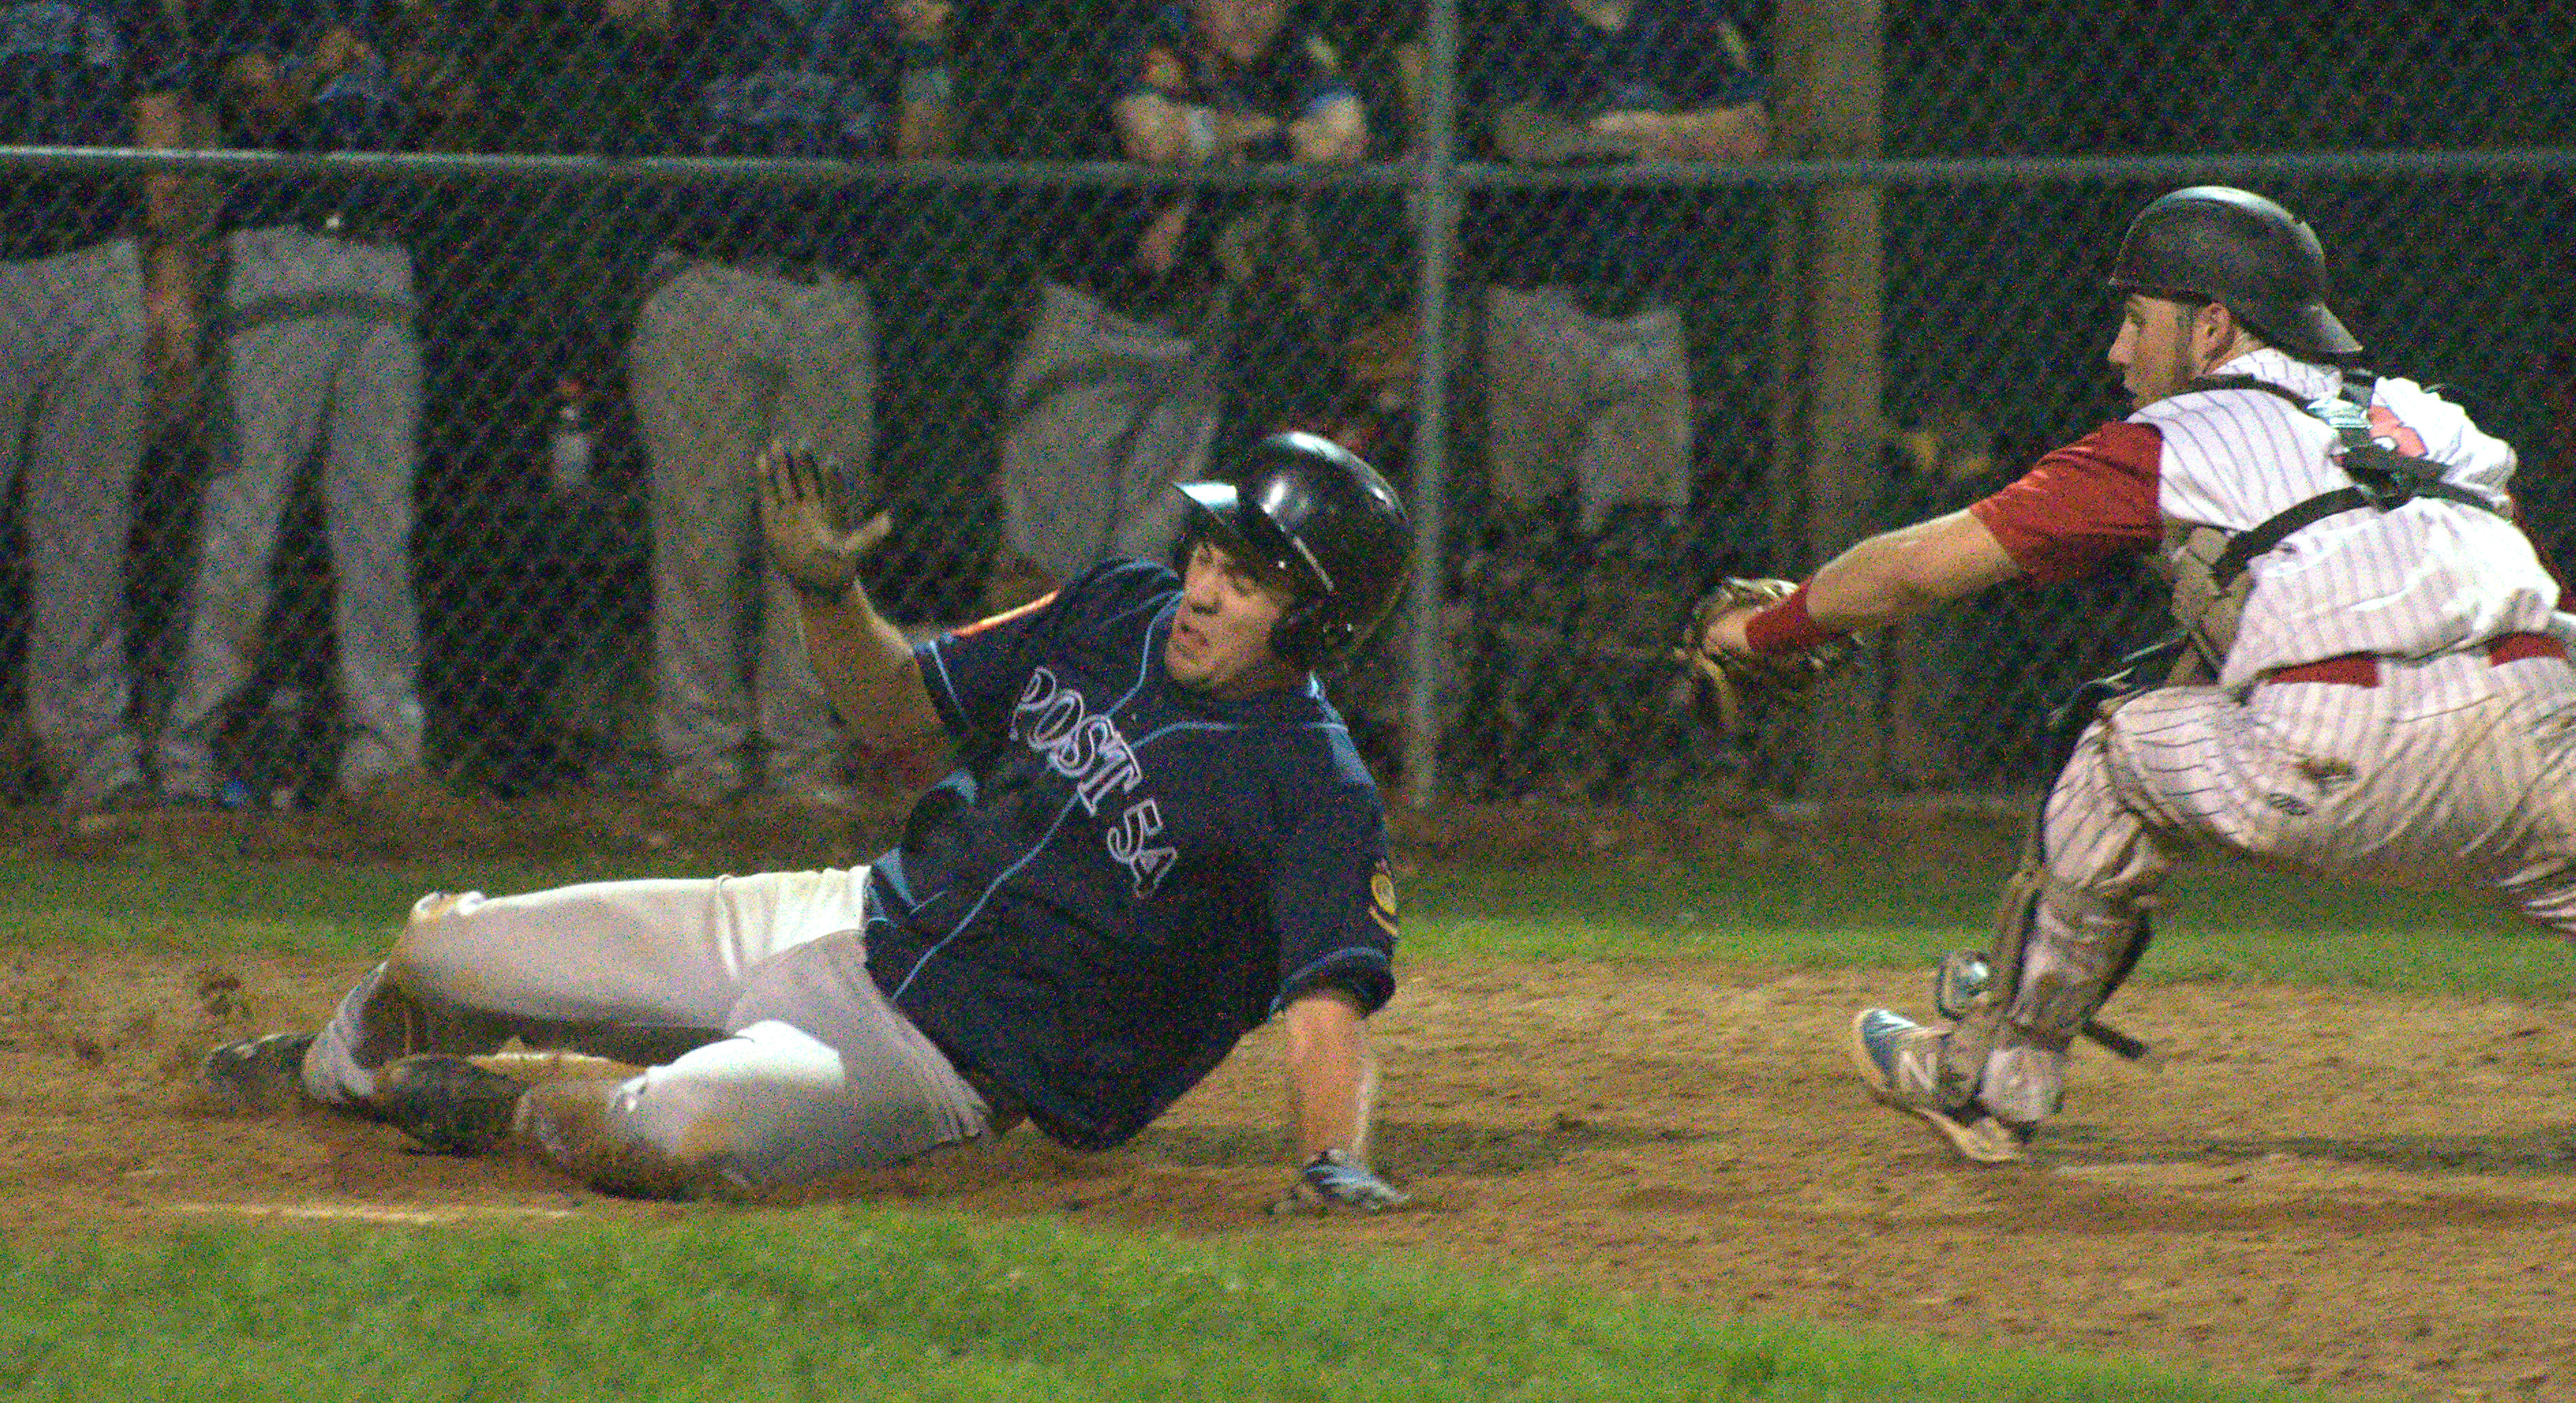 Bedford's Michael Kernan slides safely past Concord catcher Chris Fournier during Thursday's game.